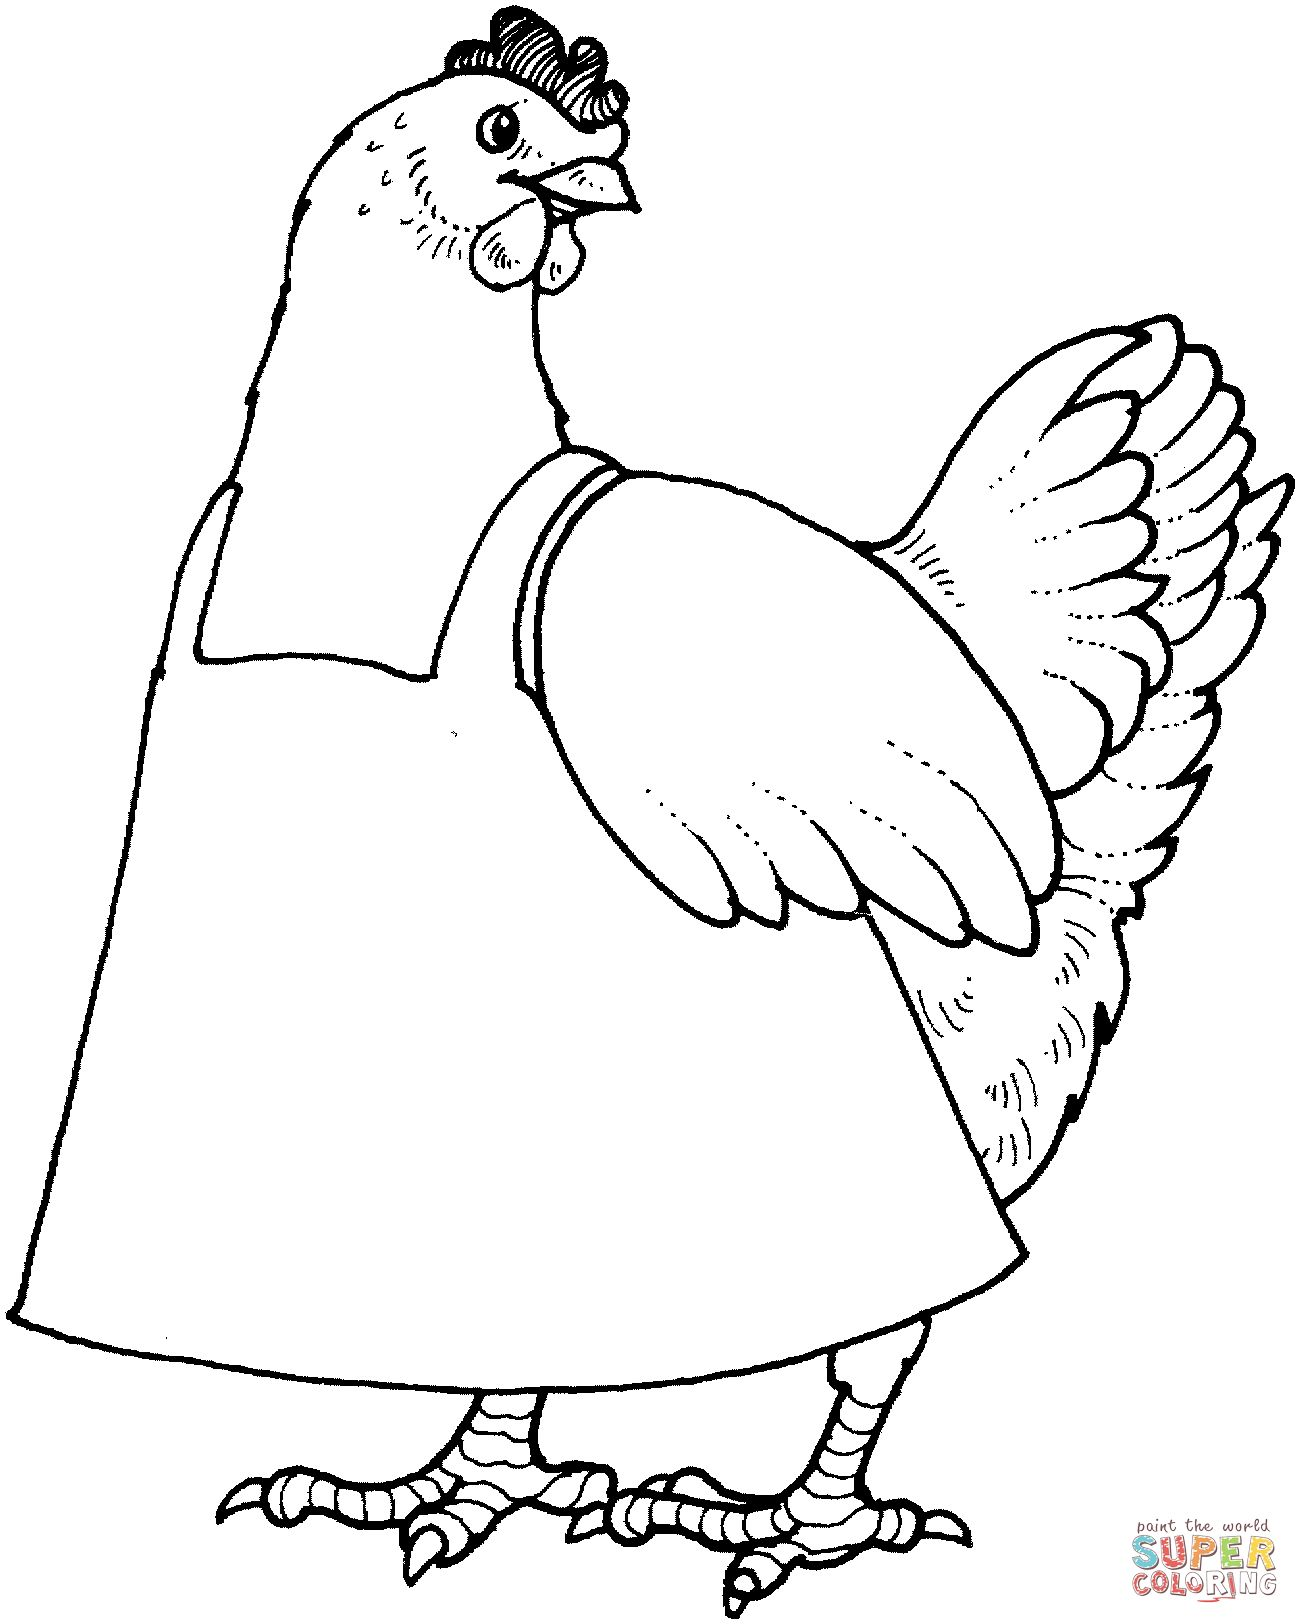 chicken coloring chicken coloring book for preschoolers backyard chickens chicken coloring 1 1